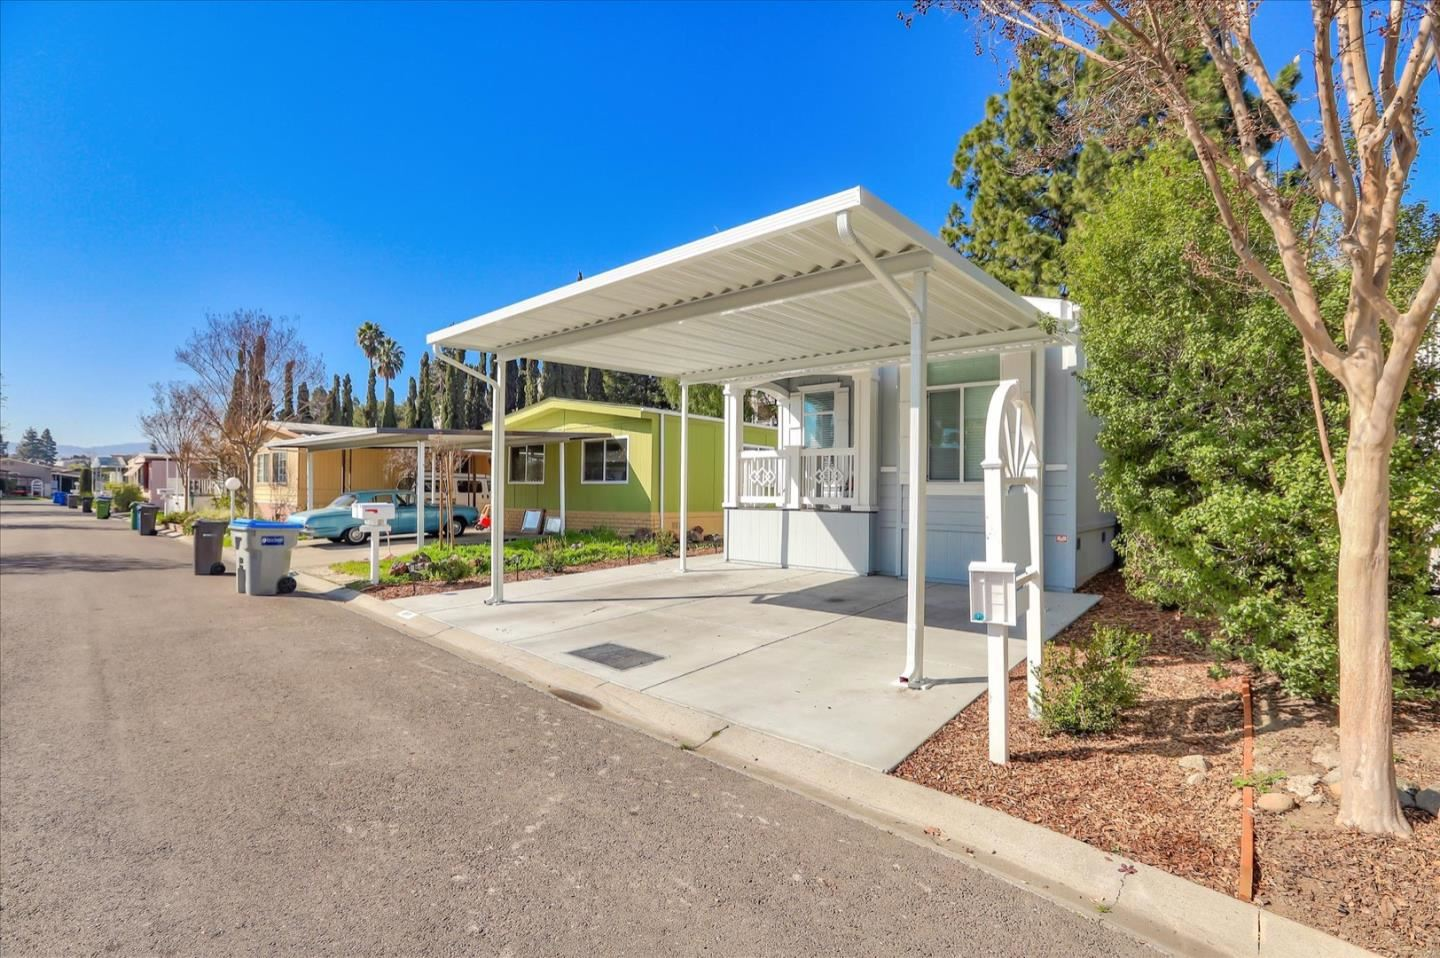 91 Timber Cove Drive, Campbell, CA 95008 - MLS#: ML81836548